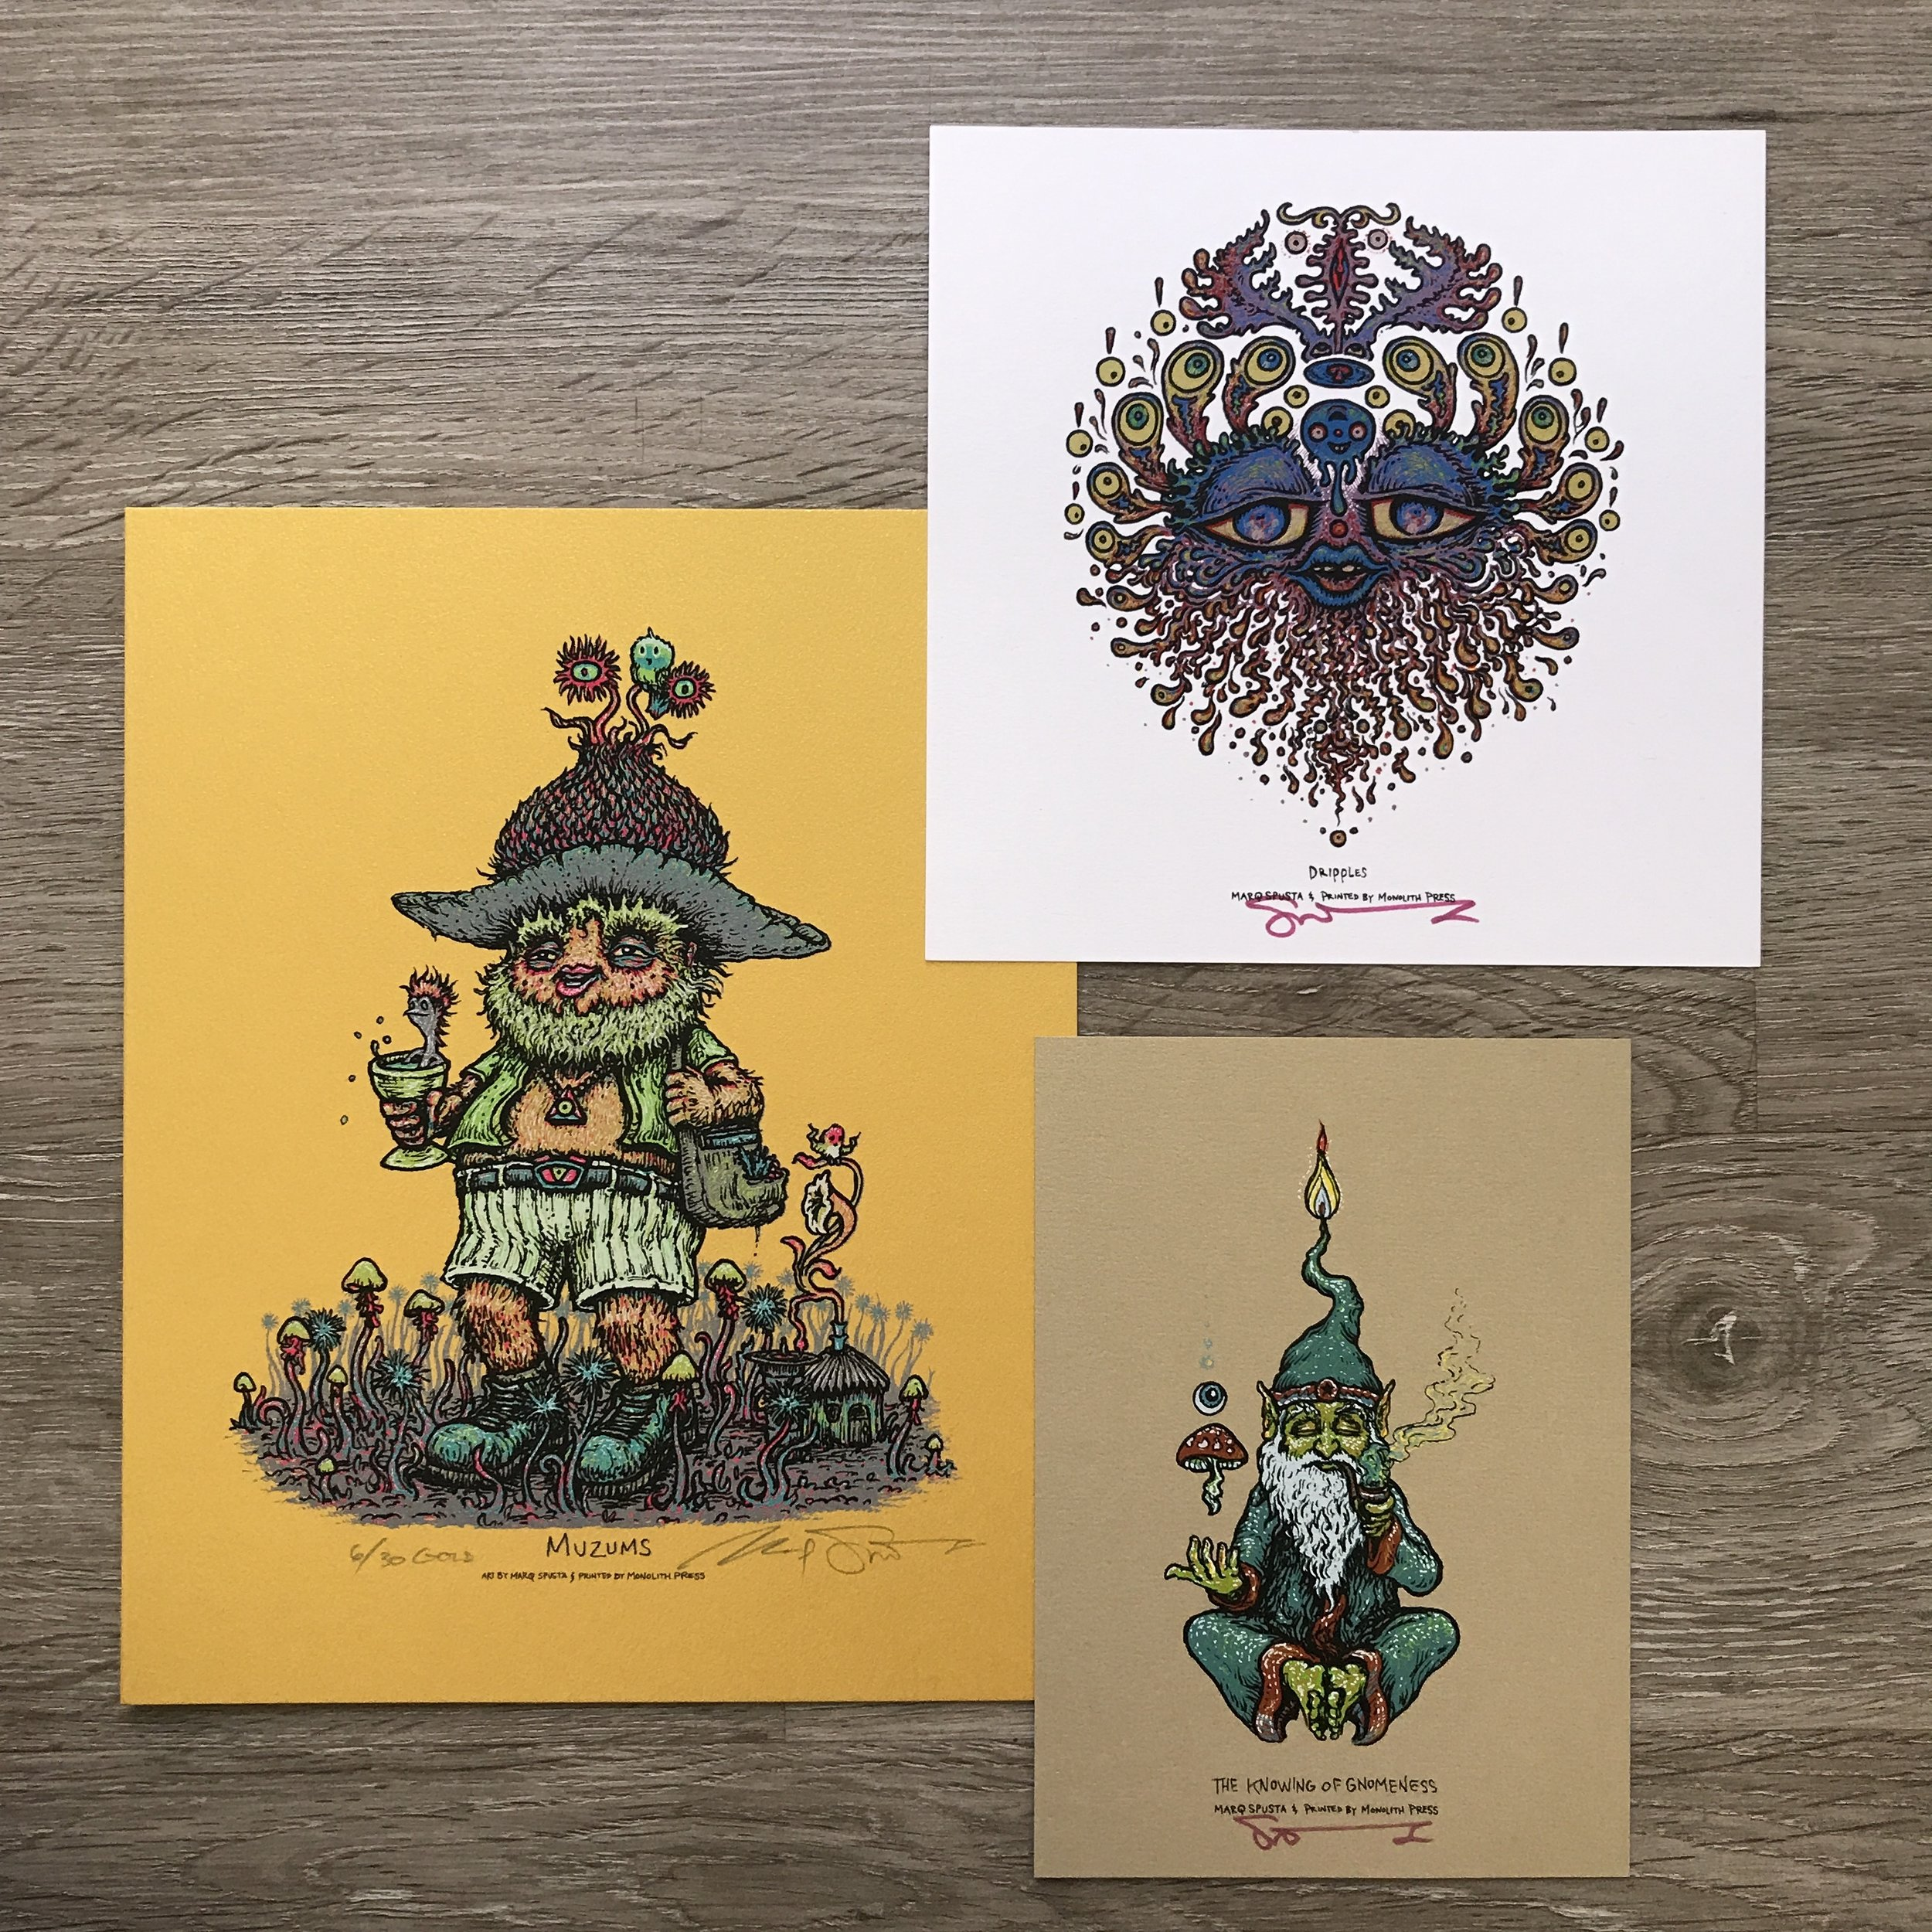 "$240 Gold Variant Muzums size 8"" x 10"" + Knowing of Gnomeness 5"" x 7"" + Dripples 7"" x 7"""